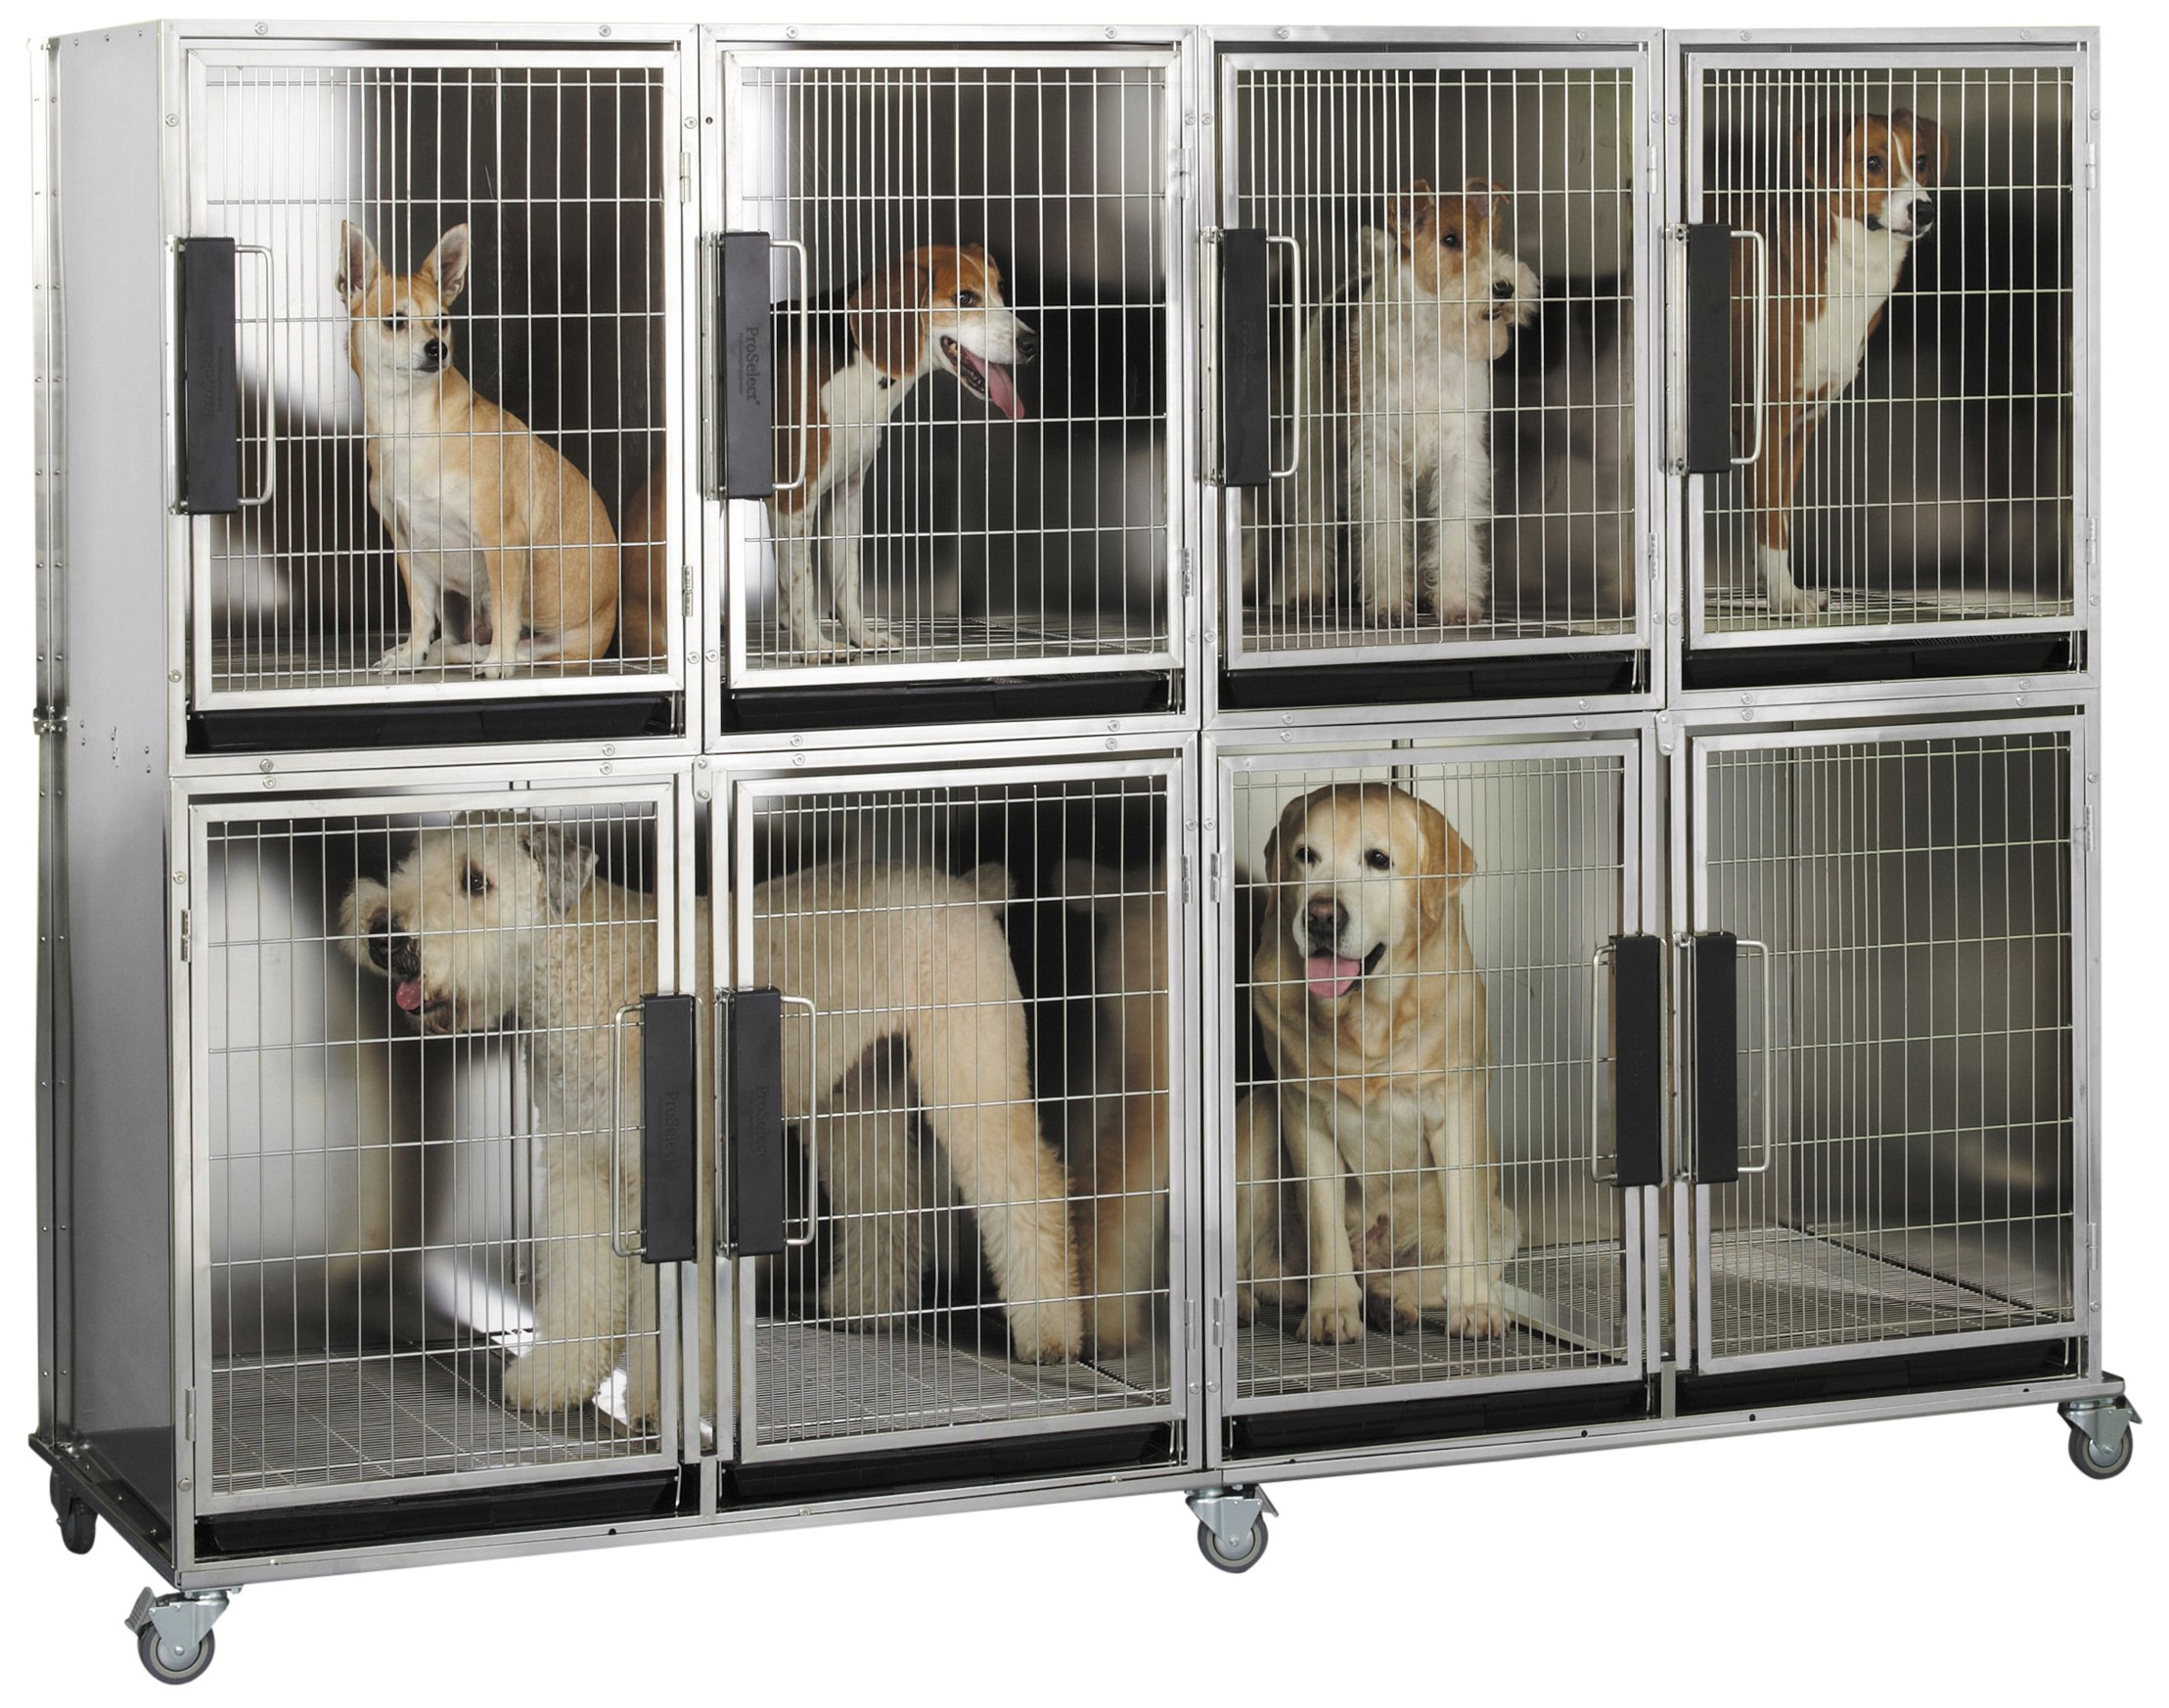 Proselect Mod Kennel Cage for Pets, 6-Unit